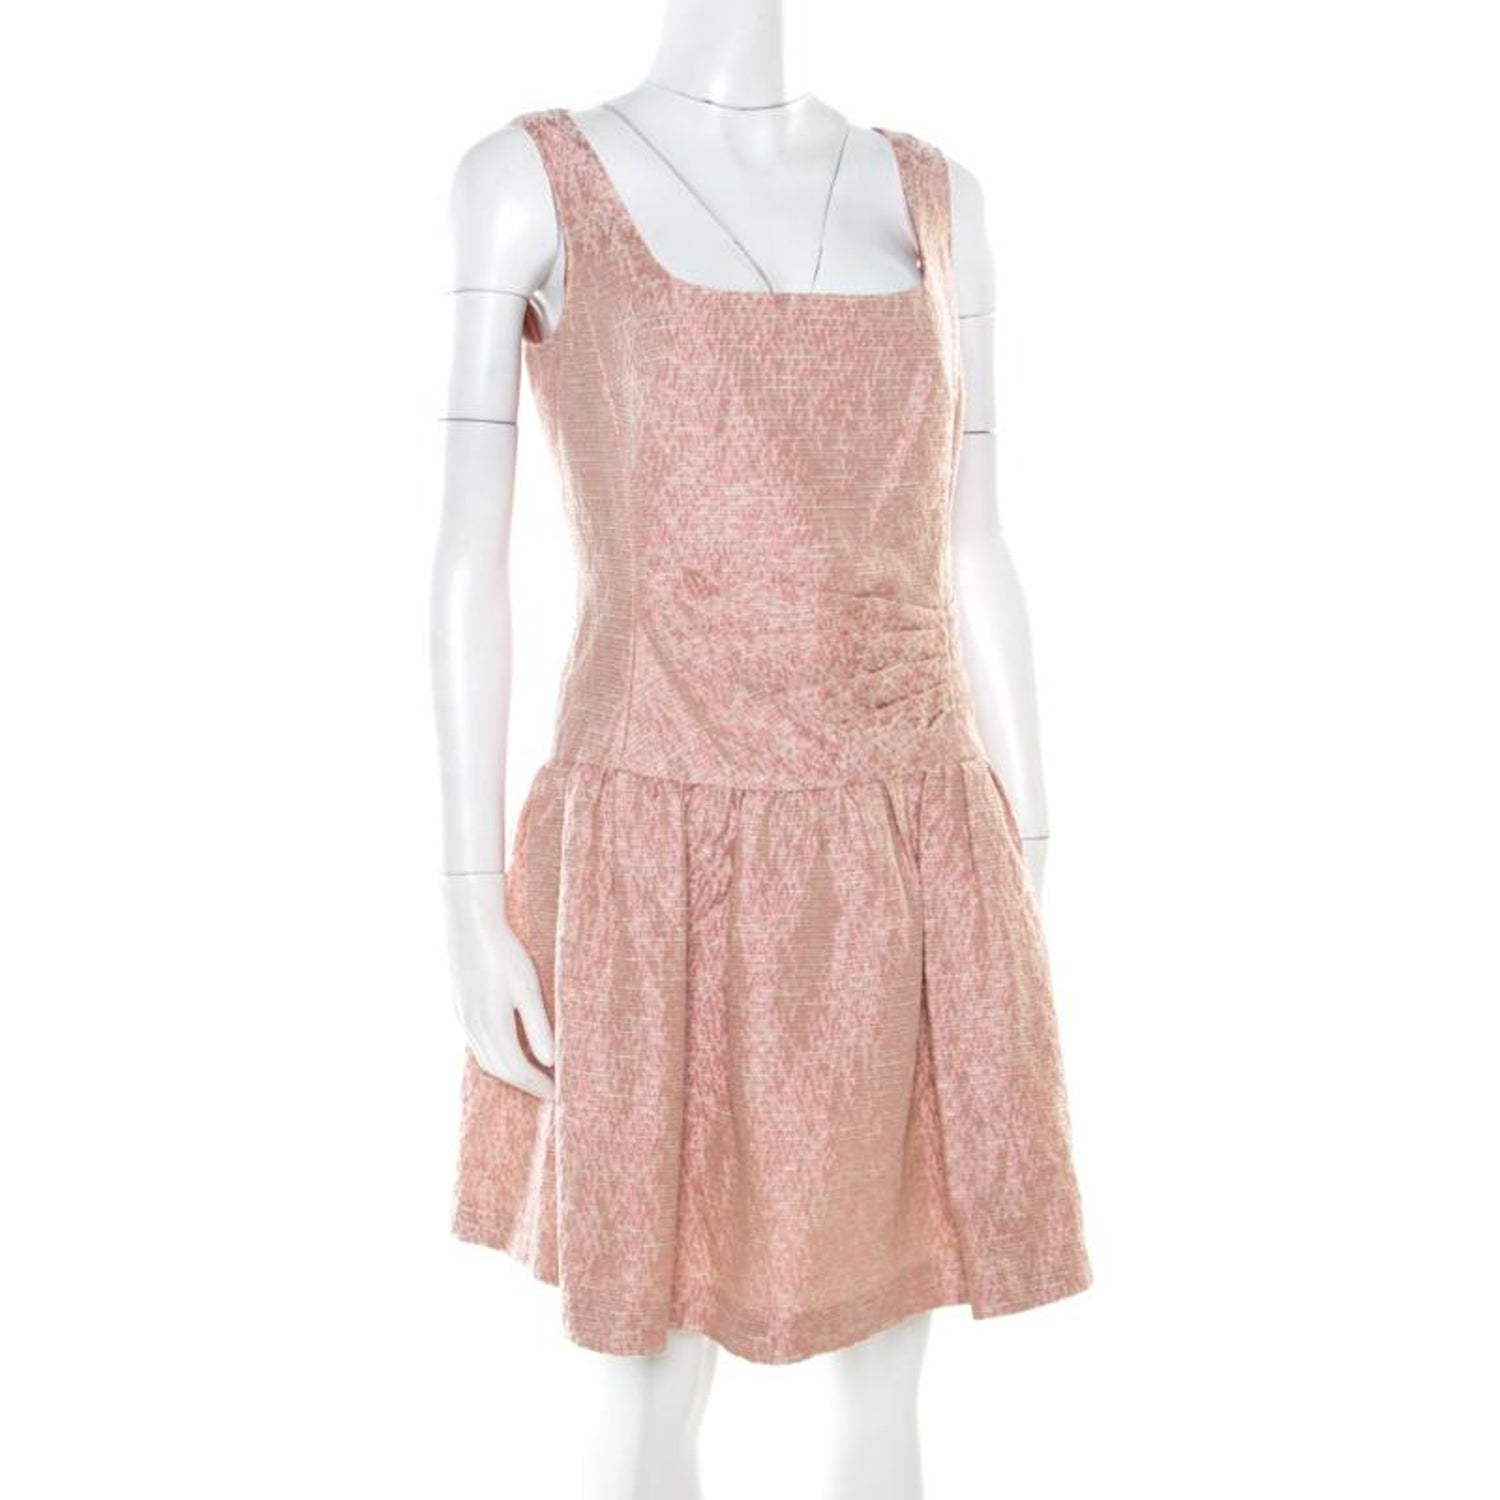 27f82d2d06b Red Valentino Pink and White Textured Drop Waist Sleeveless Dress M For Sale  at 1stdibs